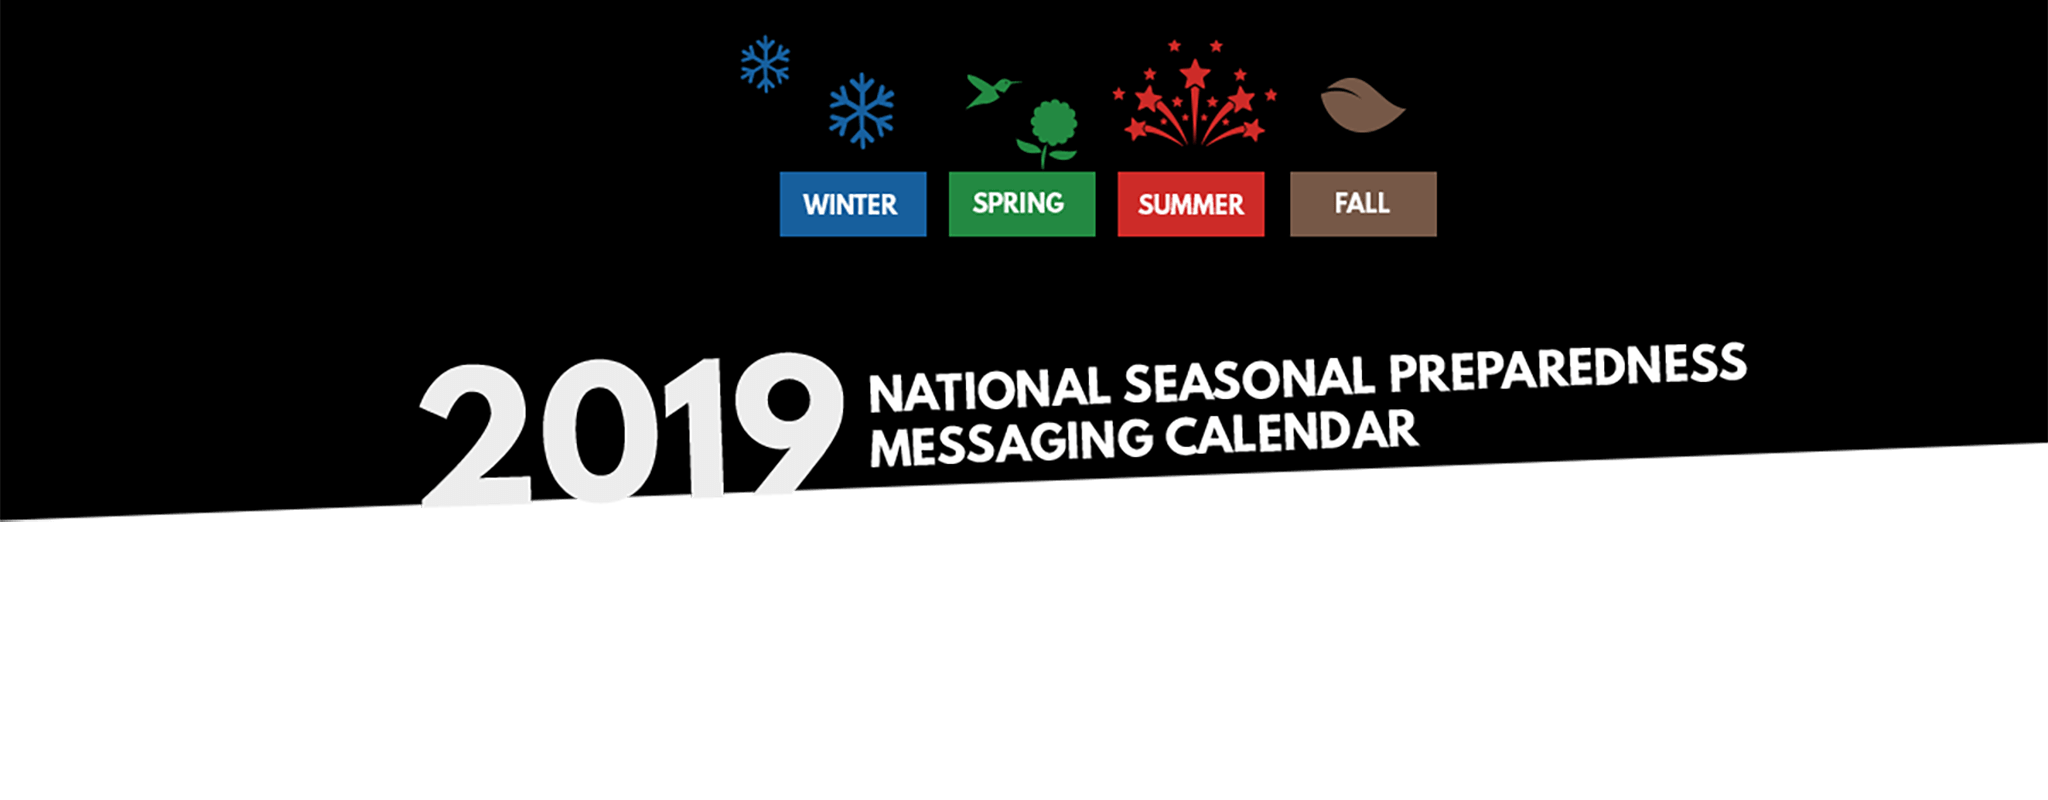 2019 National Seasonal Preparedness Messaging Calendar